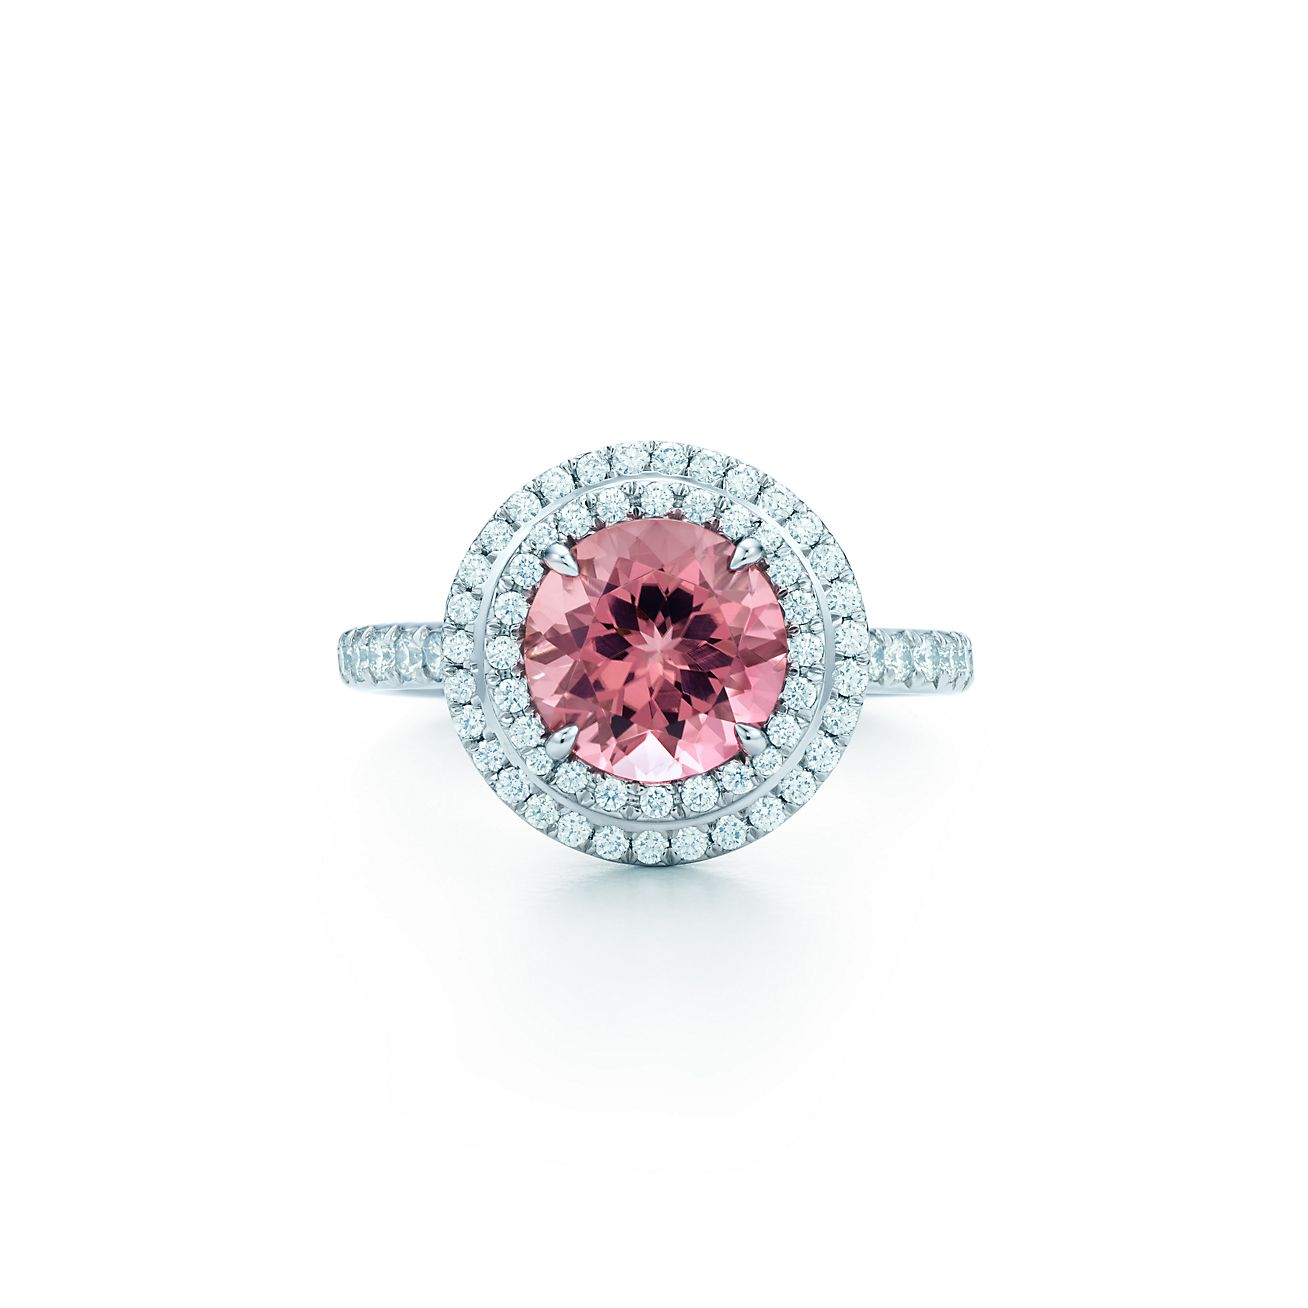 Tiffany Soleste Ring In Platinum With Diamonds And A Pink